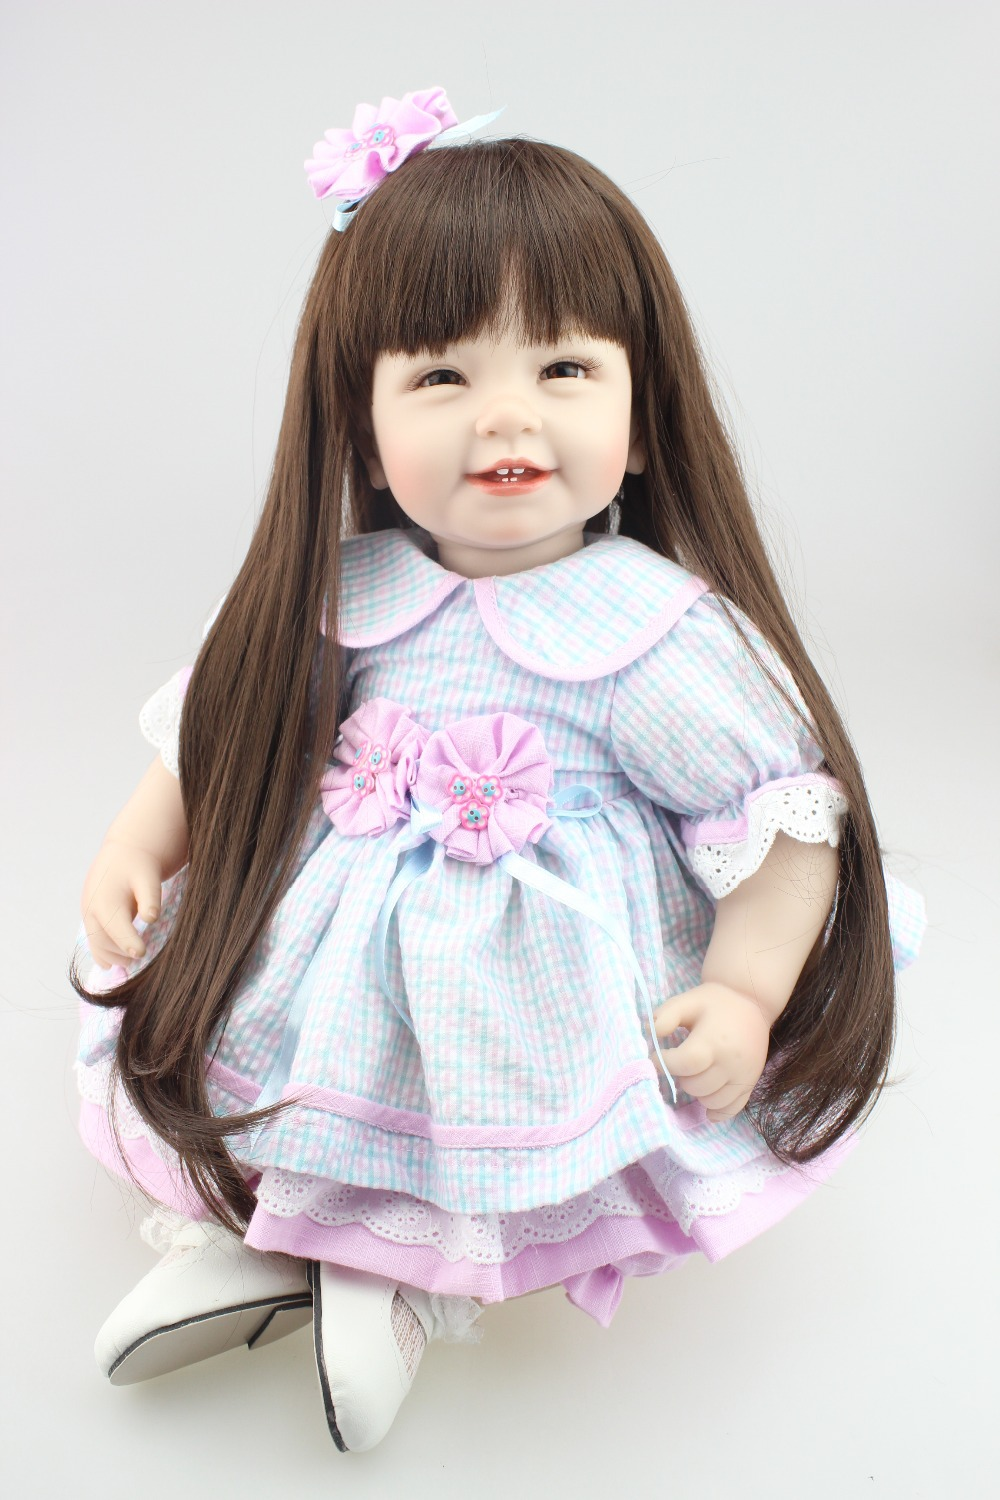 free shipping 55cm NEW design hot sale lifelike reborn todder girl doll wholesale baby dolls fashion doll Christmas gift